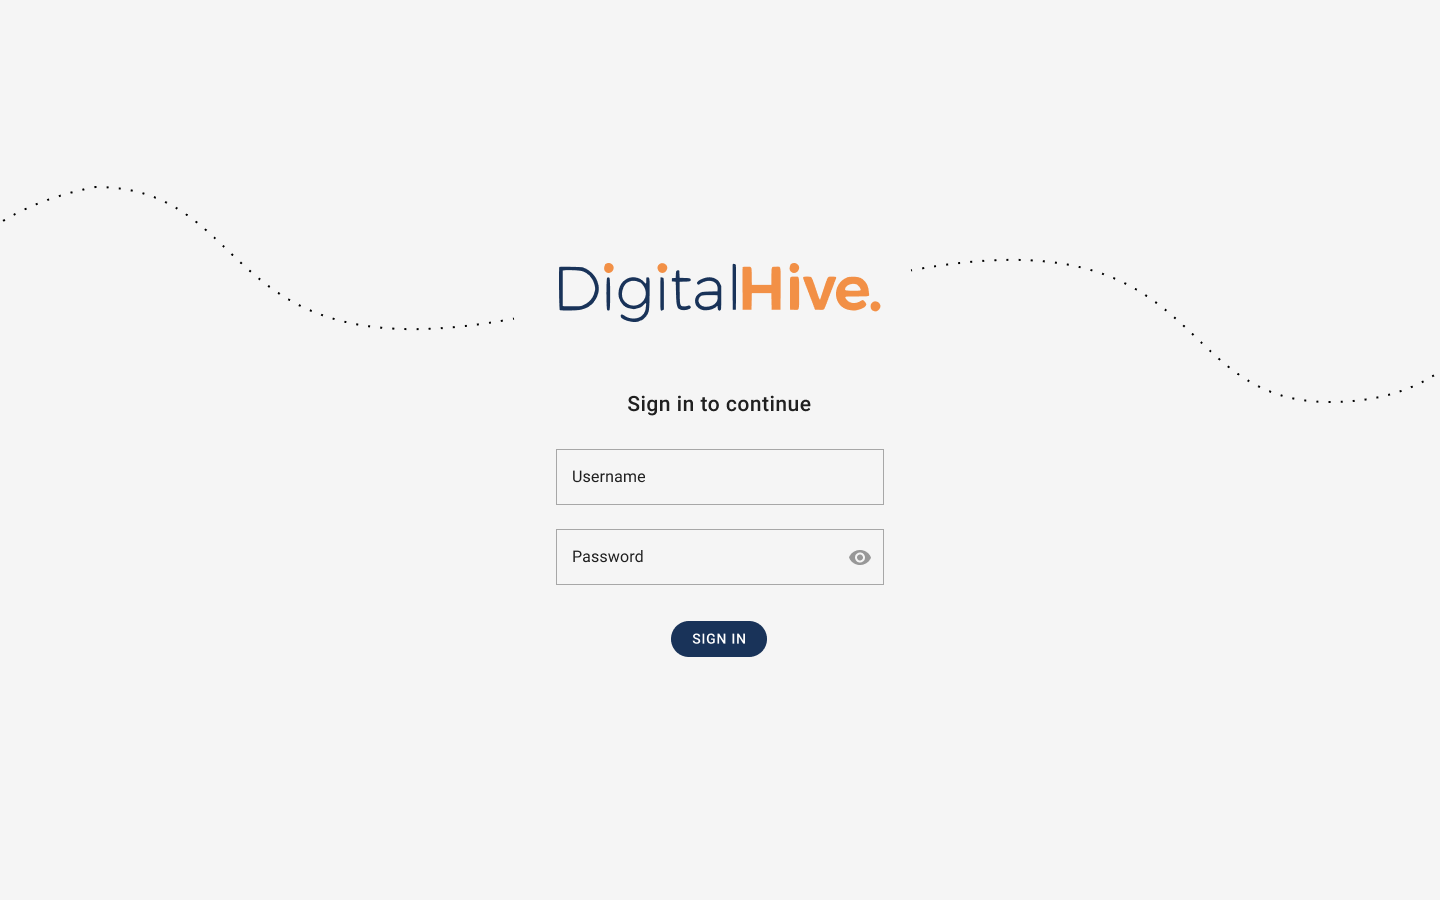 login screen for Digital Hive